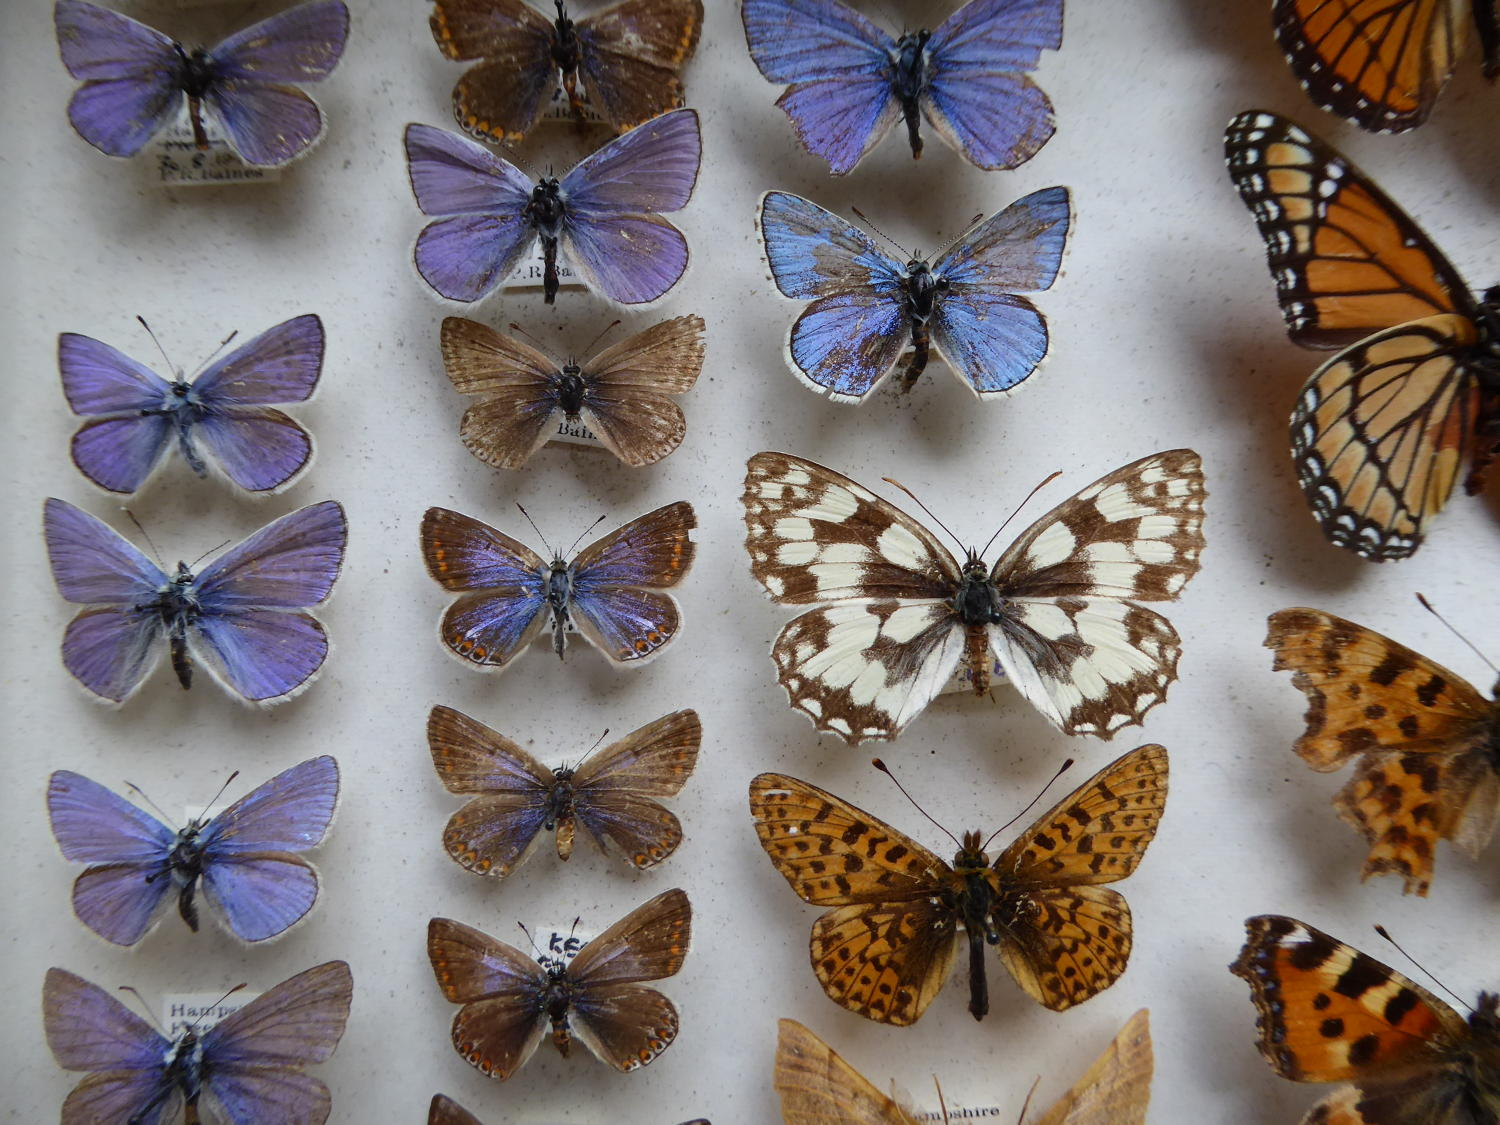 Cased Entomology Collection Of Butterflies & Moths